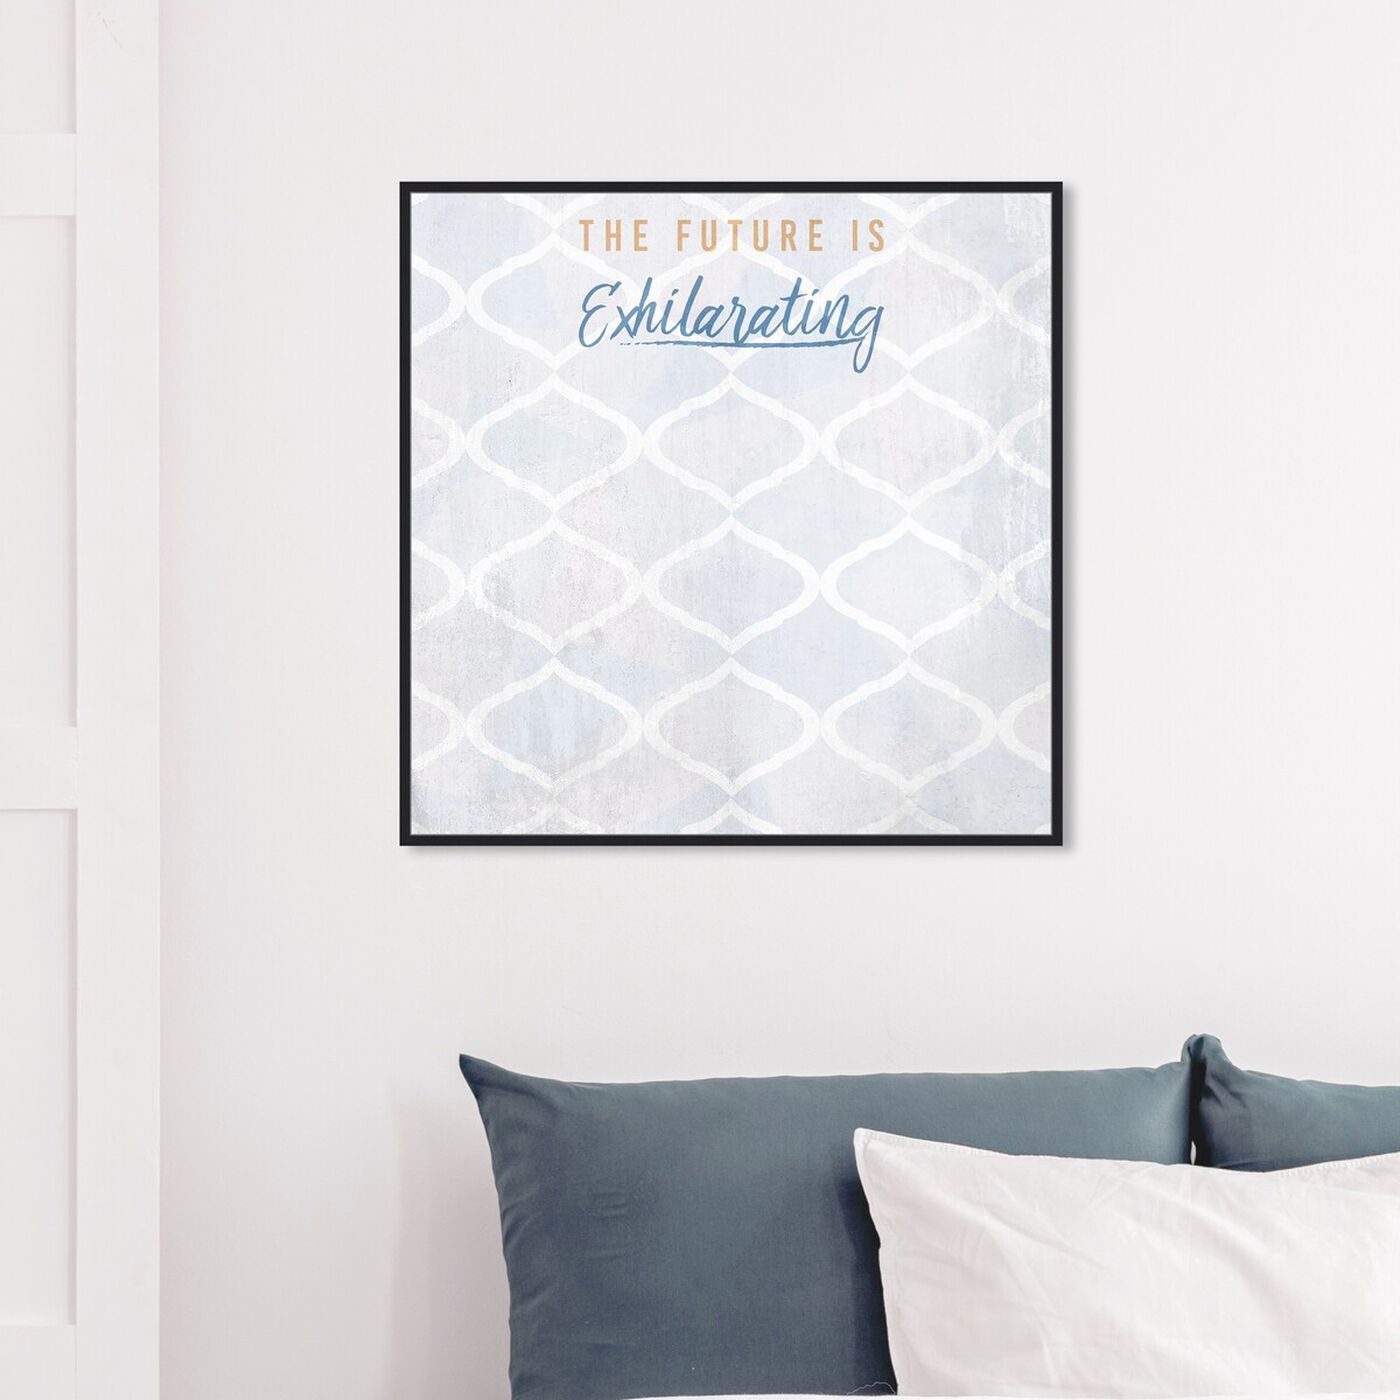 Hanging view of The Future featuring typography and quotes and motivational quotes and sayings art.